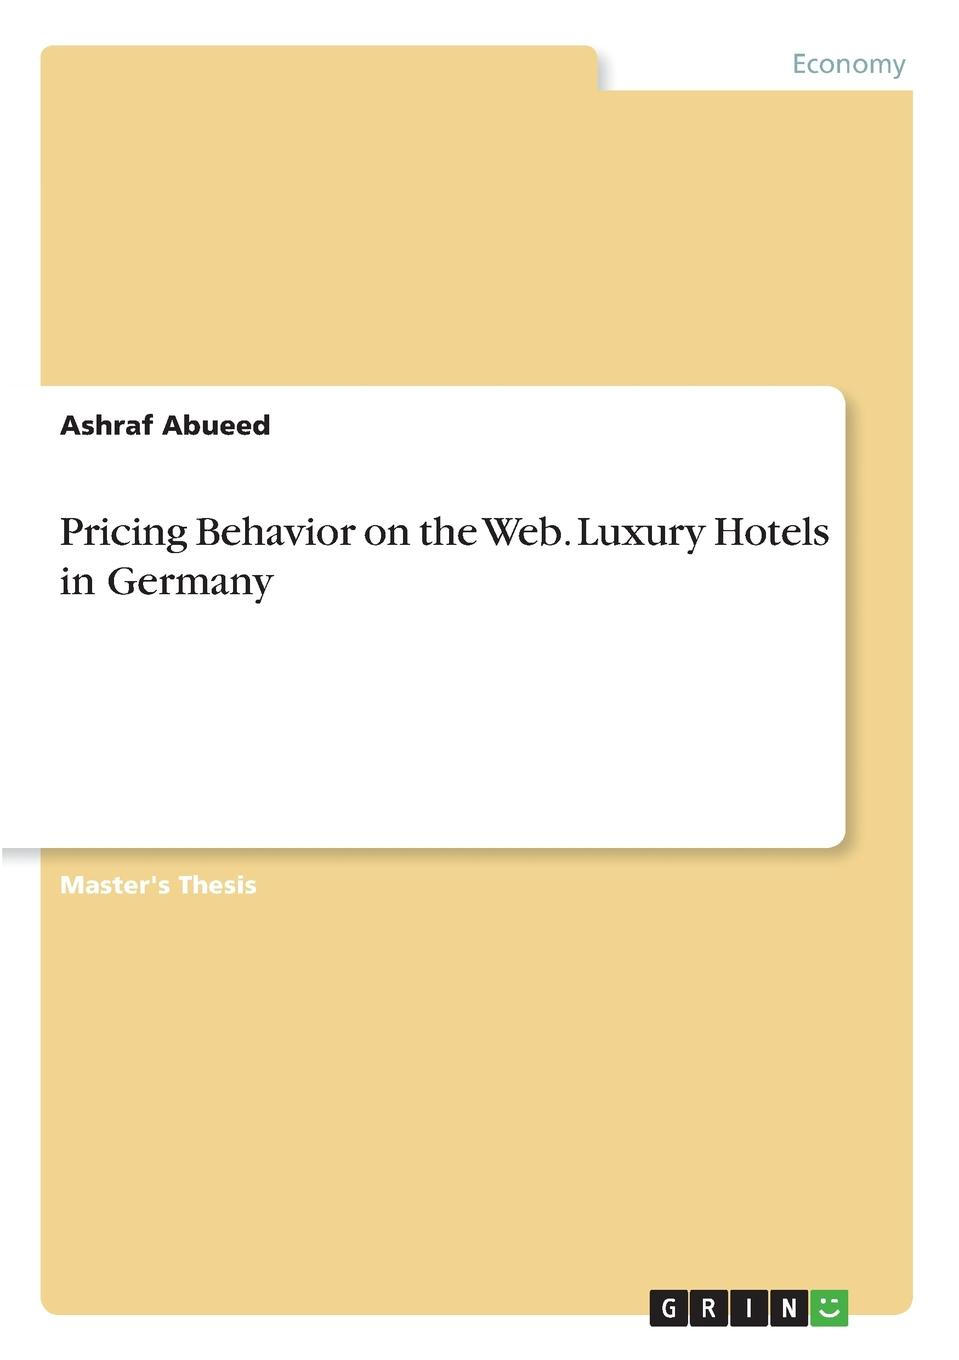 Ashraf Abueed Pricing Behavior on the Web. Luxury Hotels in Germany